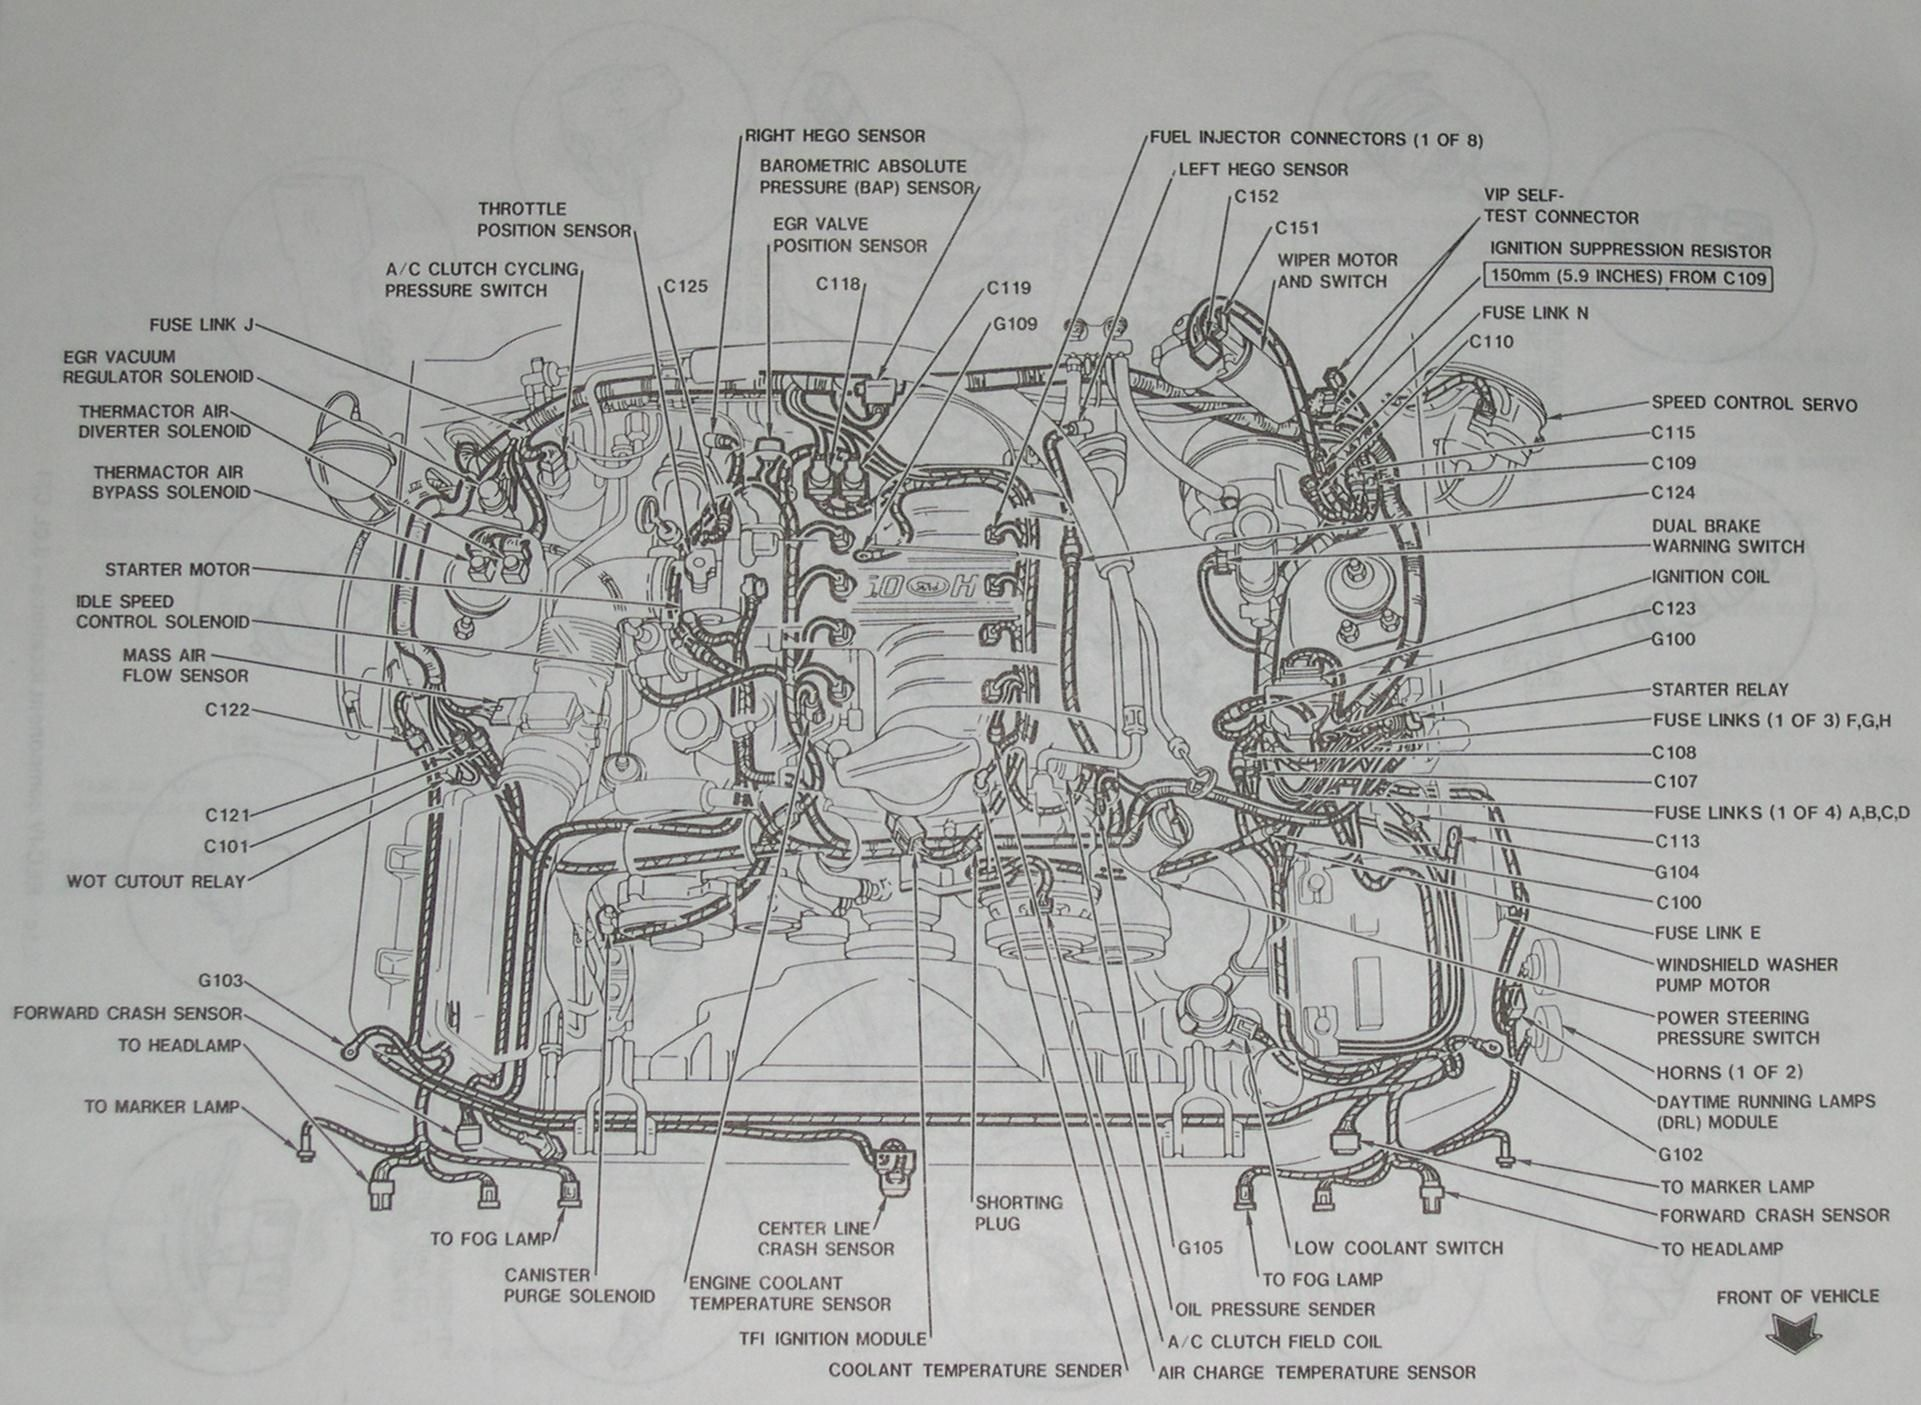 94 95 Engine Bay Diagram Mustang Fuse Wiring Diagrams 2007 Ford Mustang Mustang Engine Ford Windstar